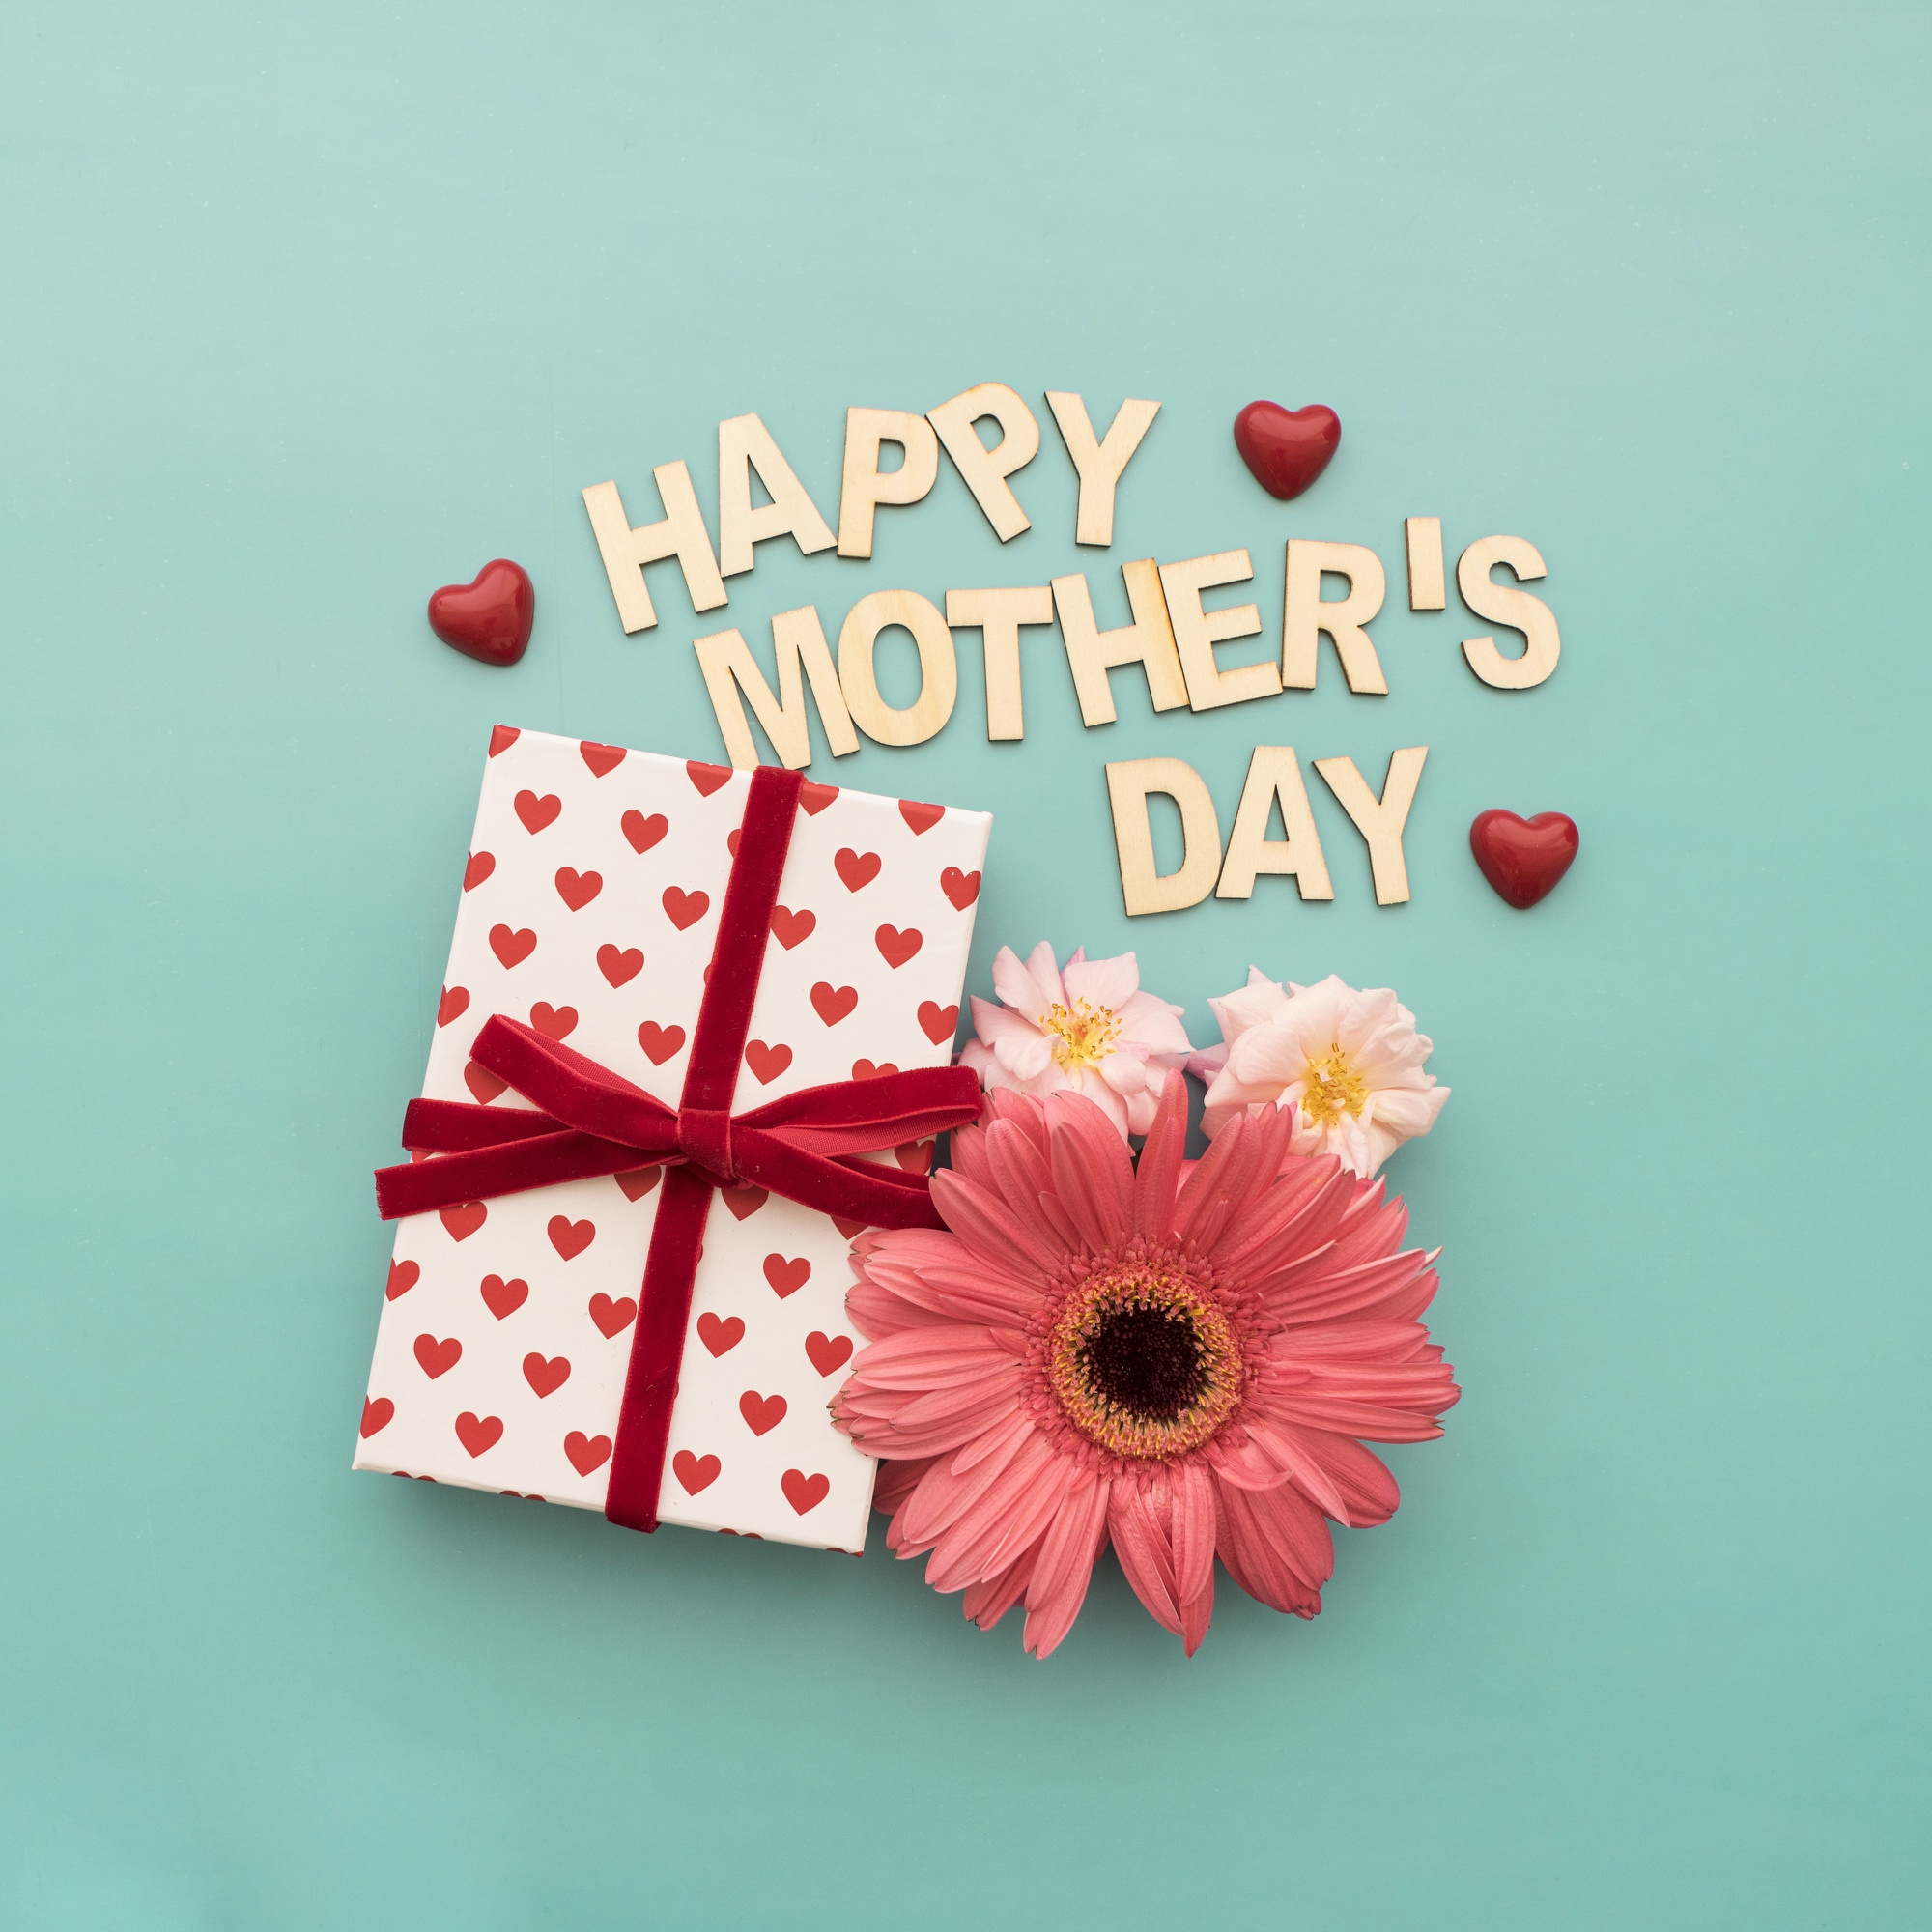 happy mother's day  lettering, gift box, hearts and flowers